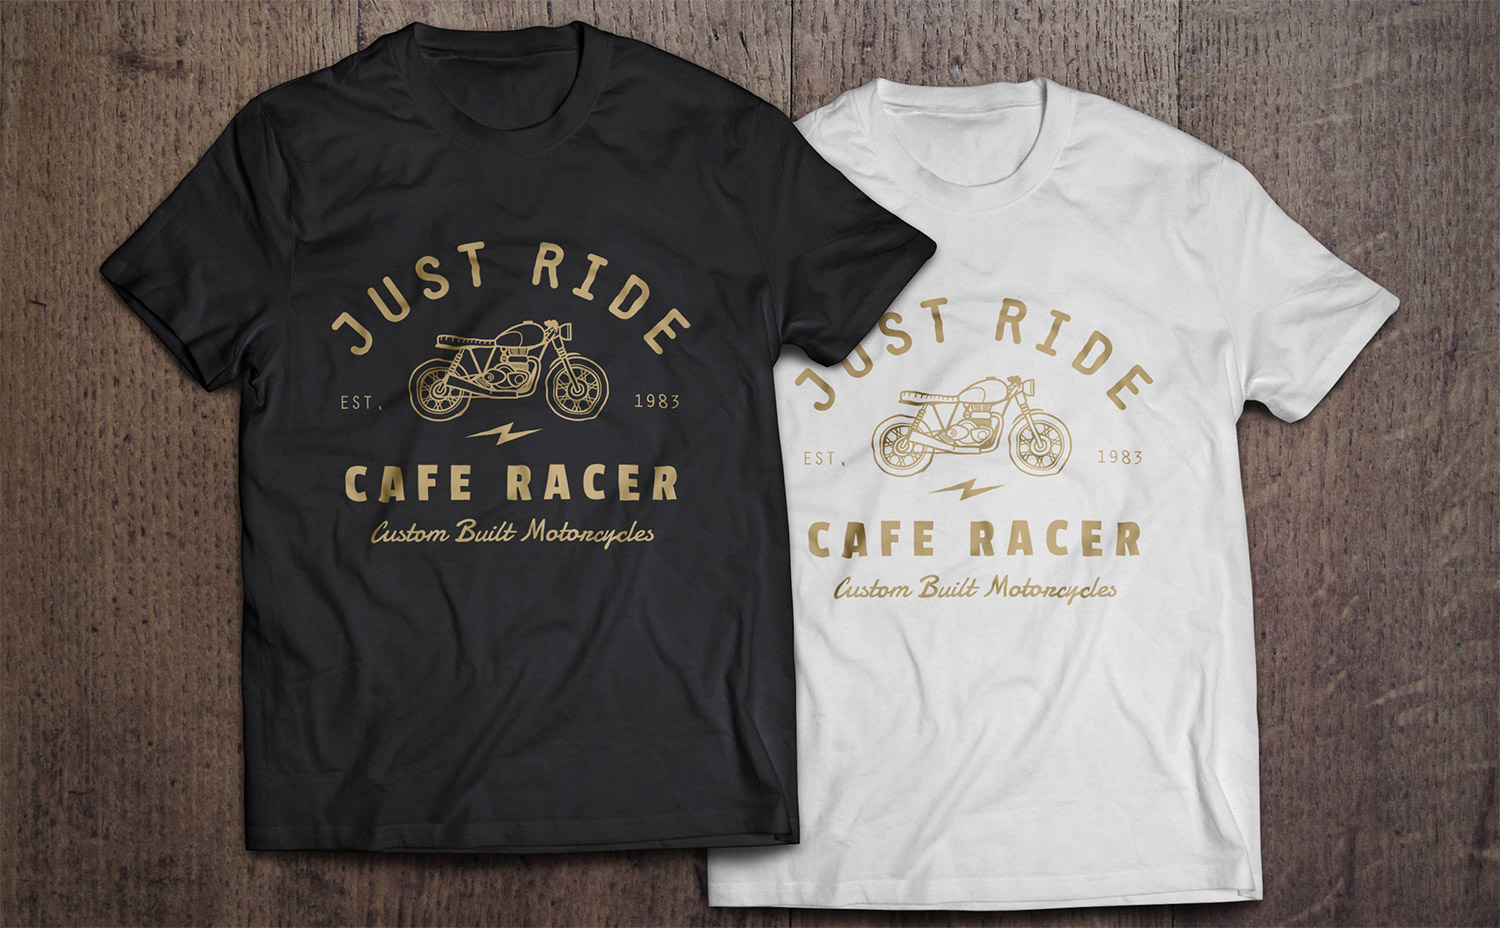 a4f4cdd7e0c175 15 Free PSD Templates to Mockup Your T-Shirt Designs